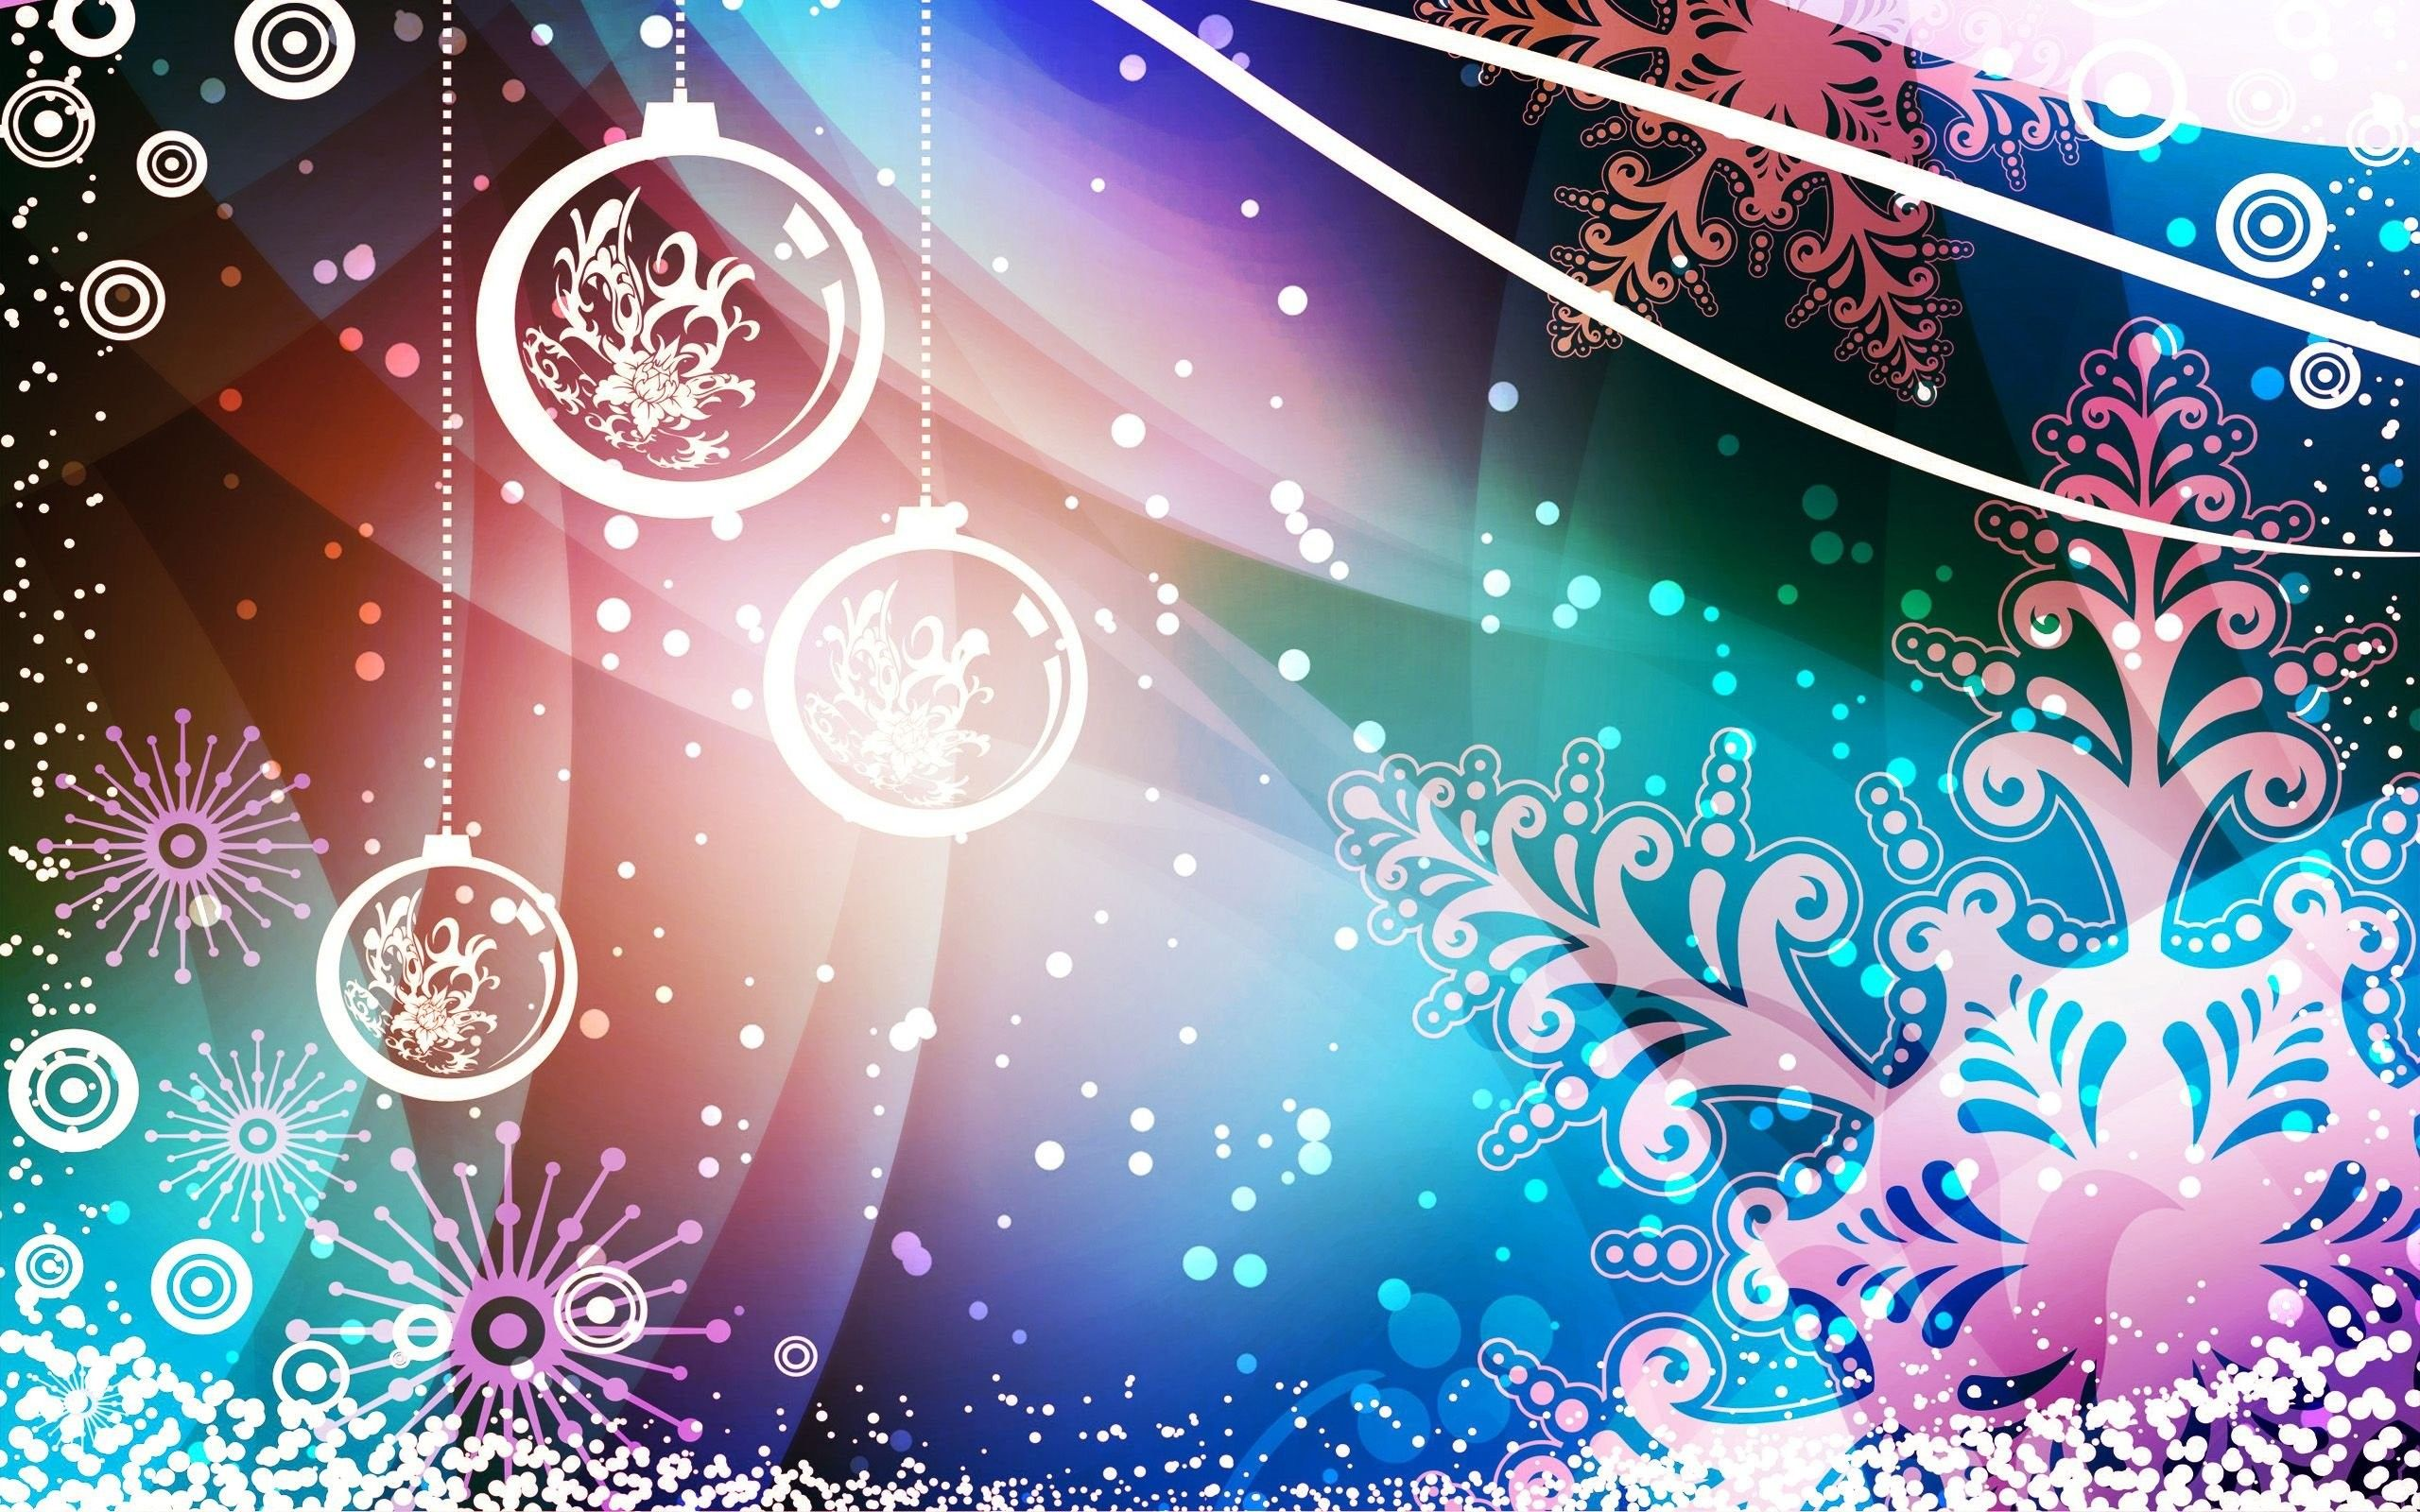 Christmas Wallpapers For Desktop 63 Pictures Wallpaper For Computer Backgrounds Christmas Wallpaper Backgrounds Christmas Background Images